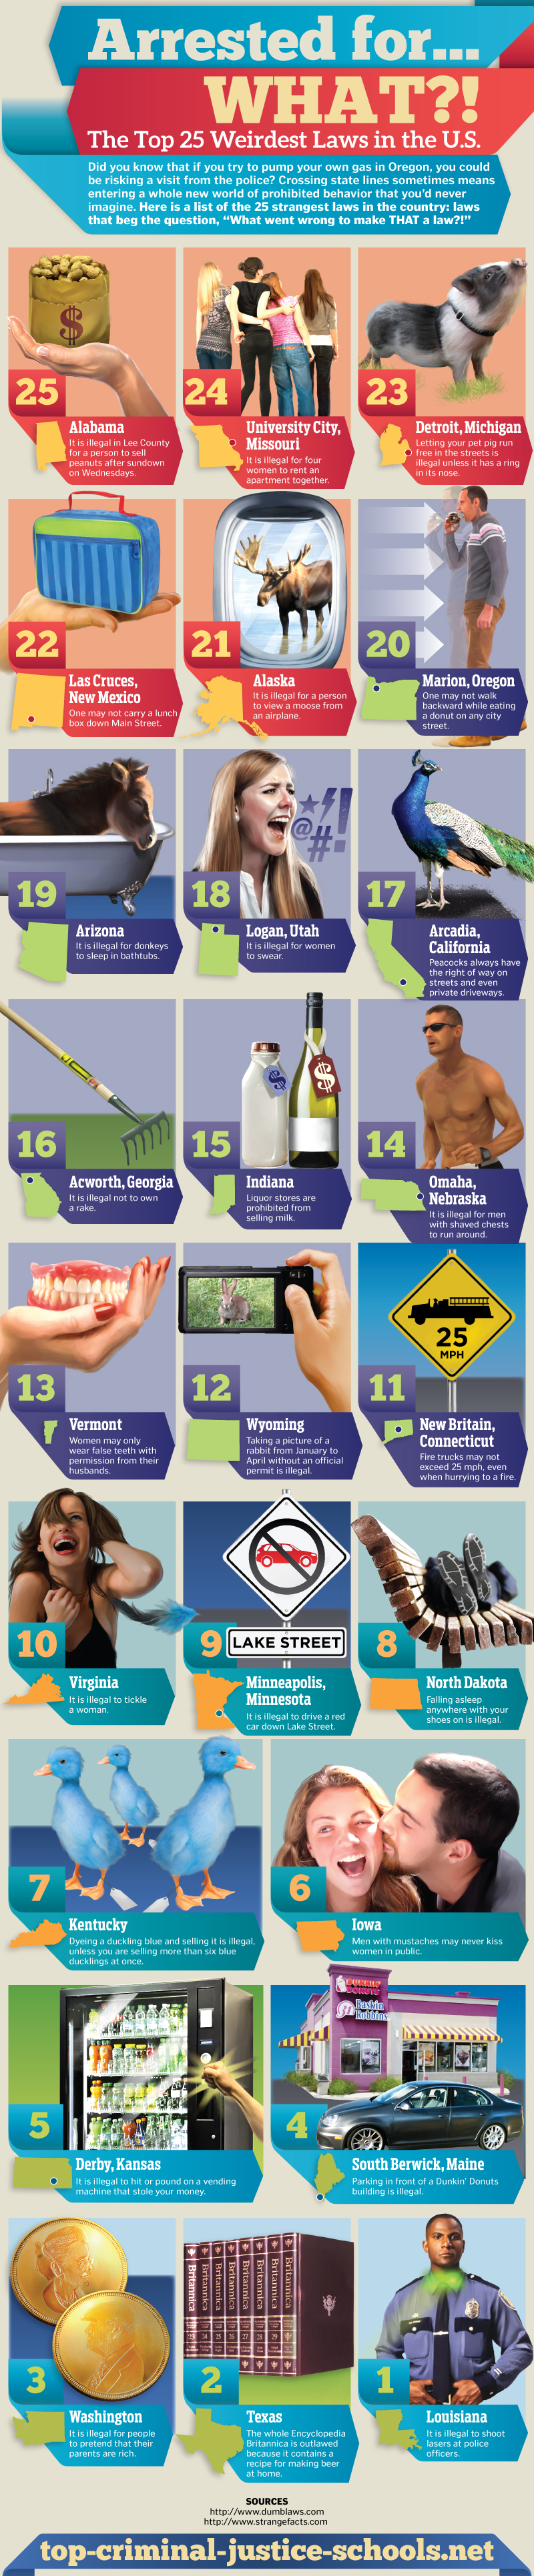 Top 25 Weirdest Laws in the U.S.